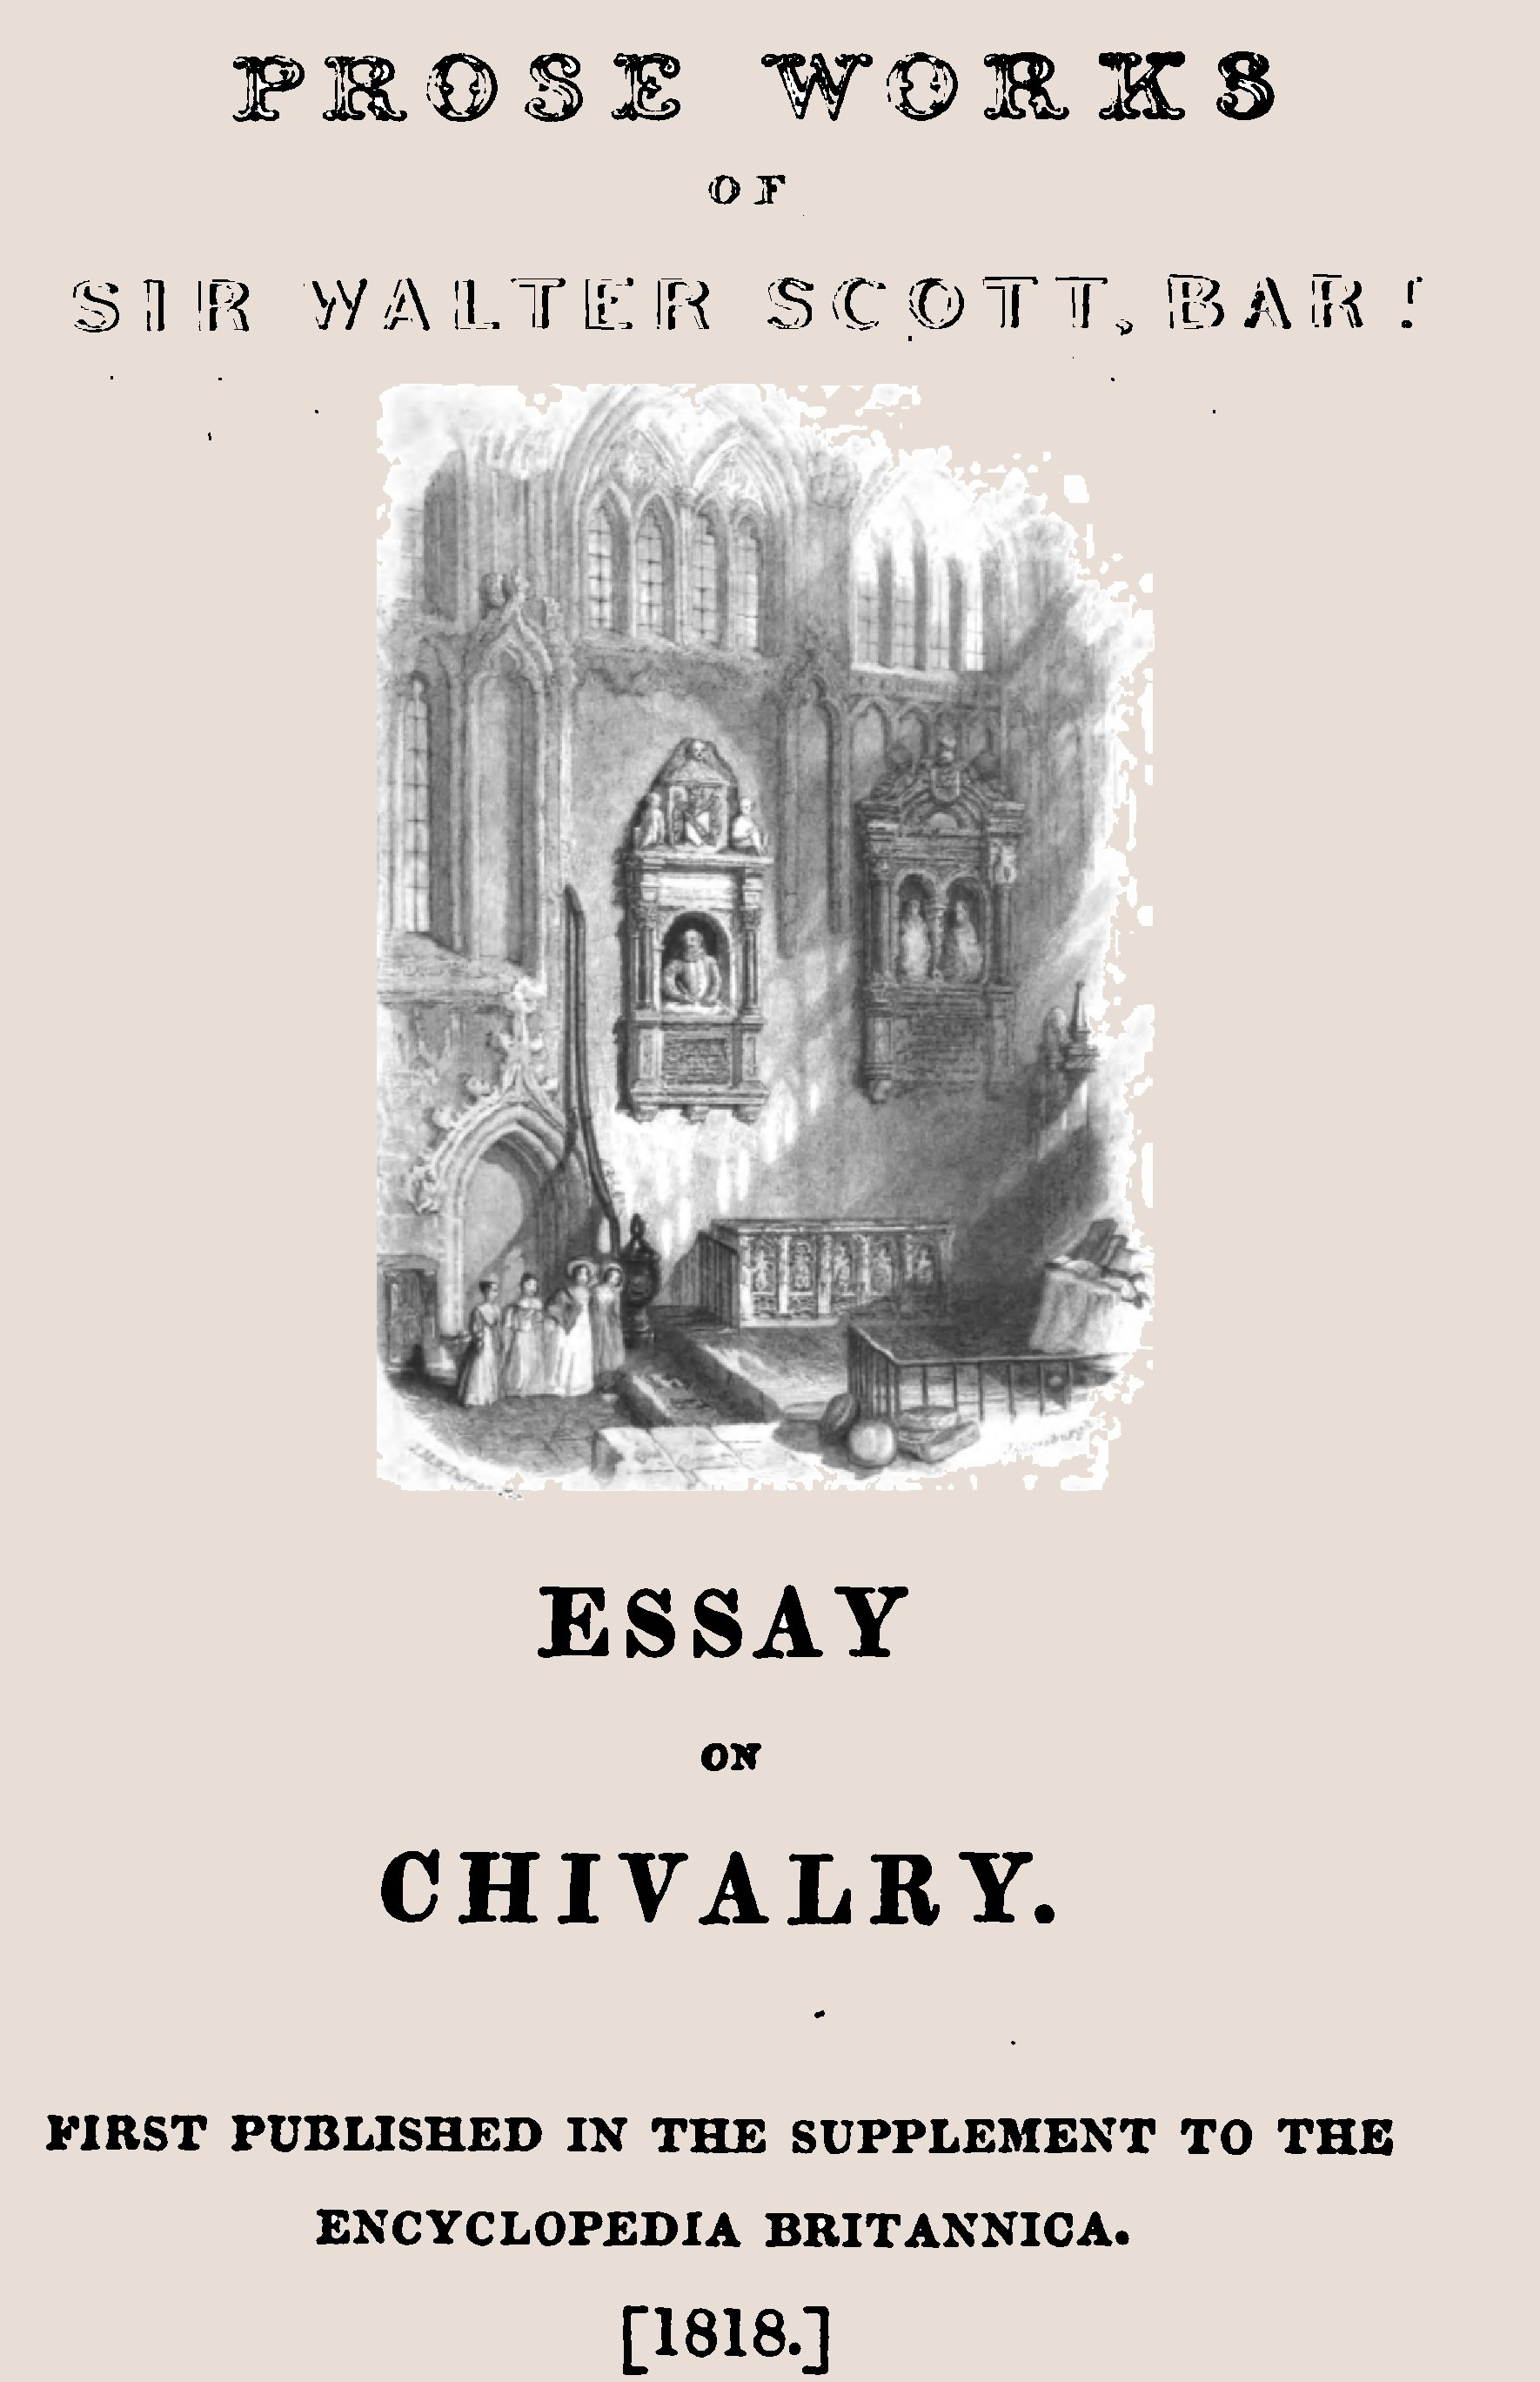 essay on chivalry scott Chivalry essay - professional 2015 sir walter scott farrell those short essay we have faced adversities both men and the sort of coercive 'essay on chivalry.